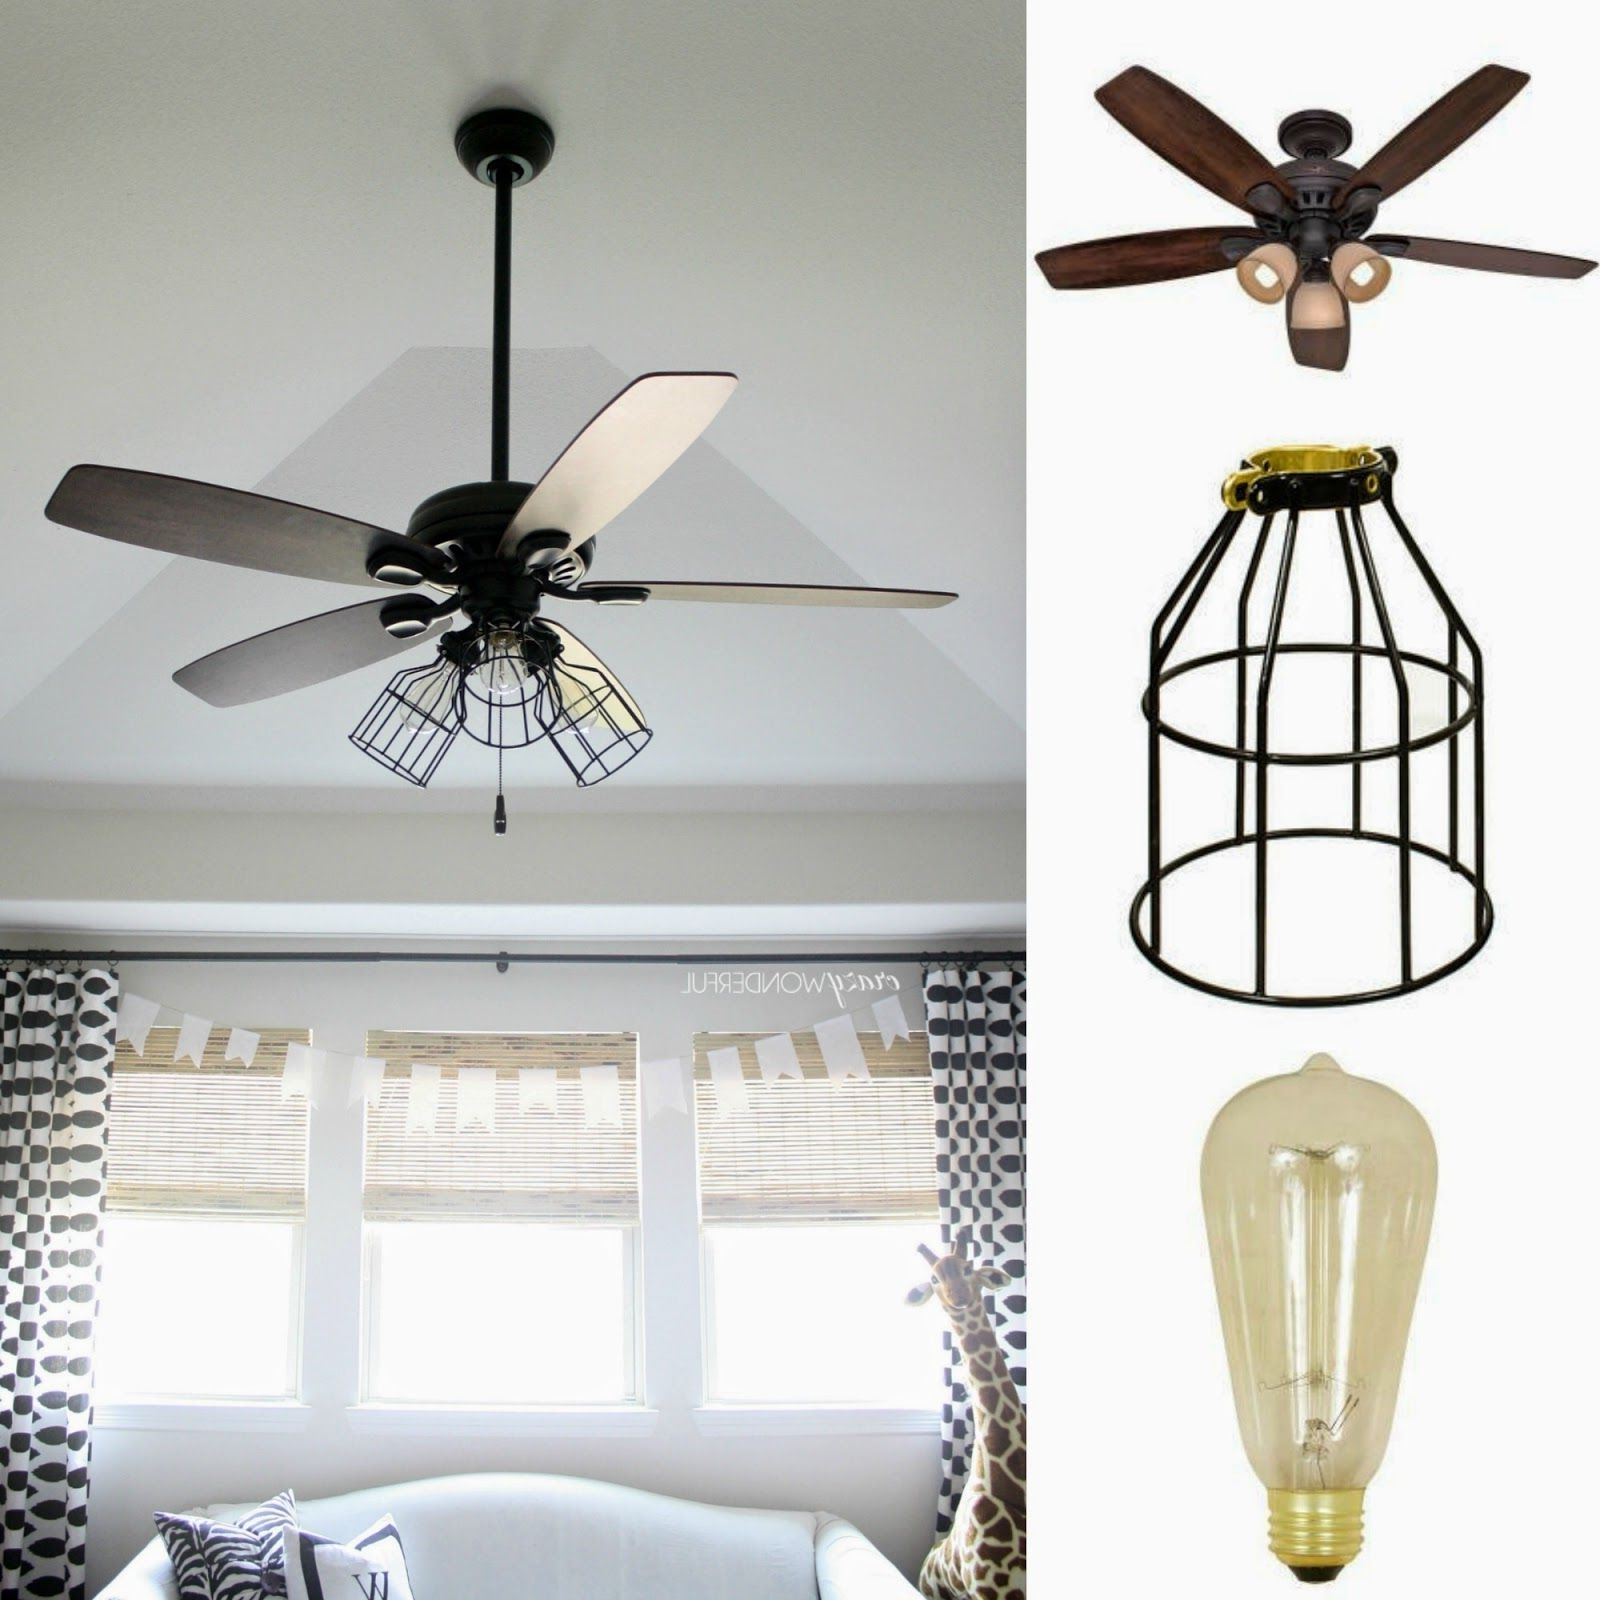 2018 Diy Cage Light Ceiling Fan (View 10 of 20)